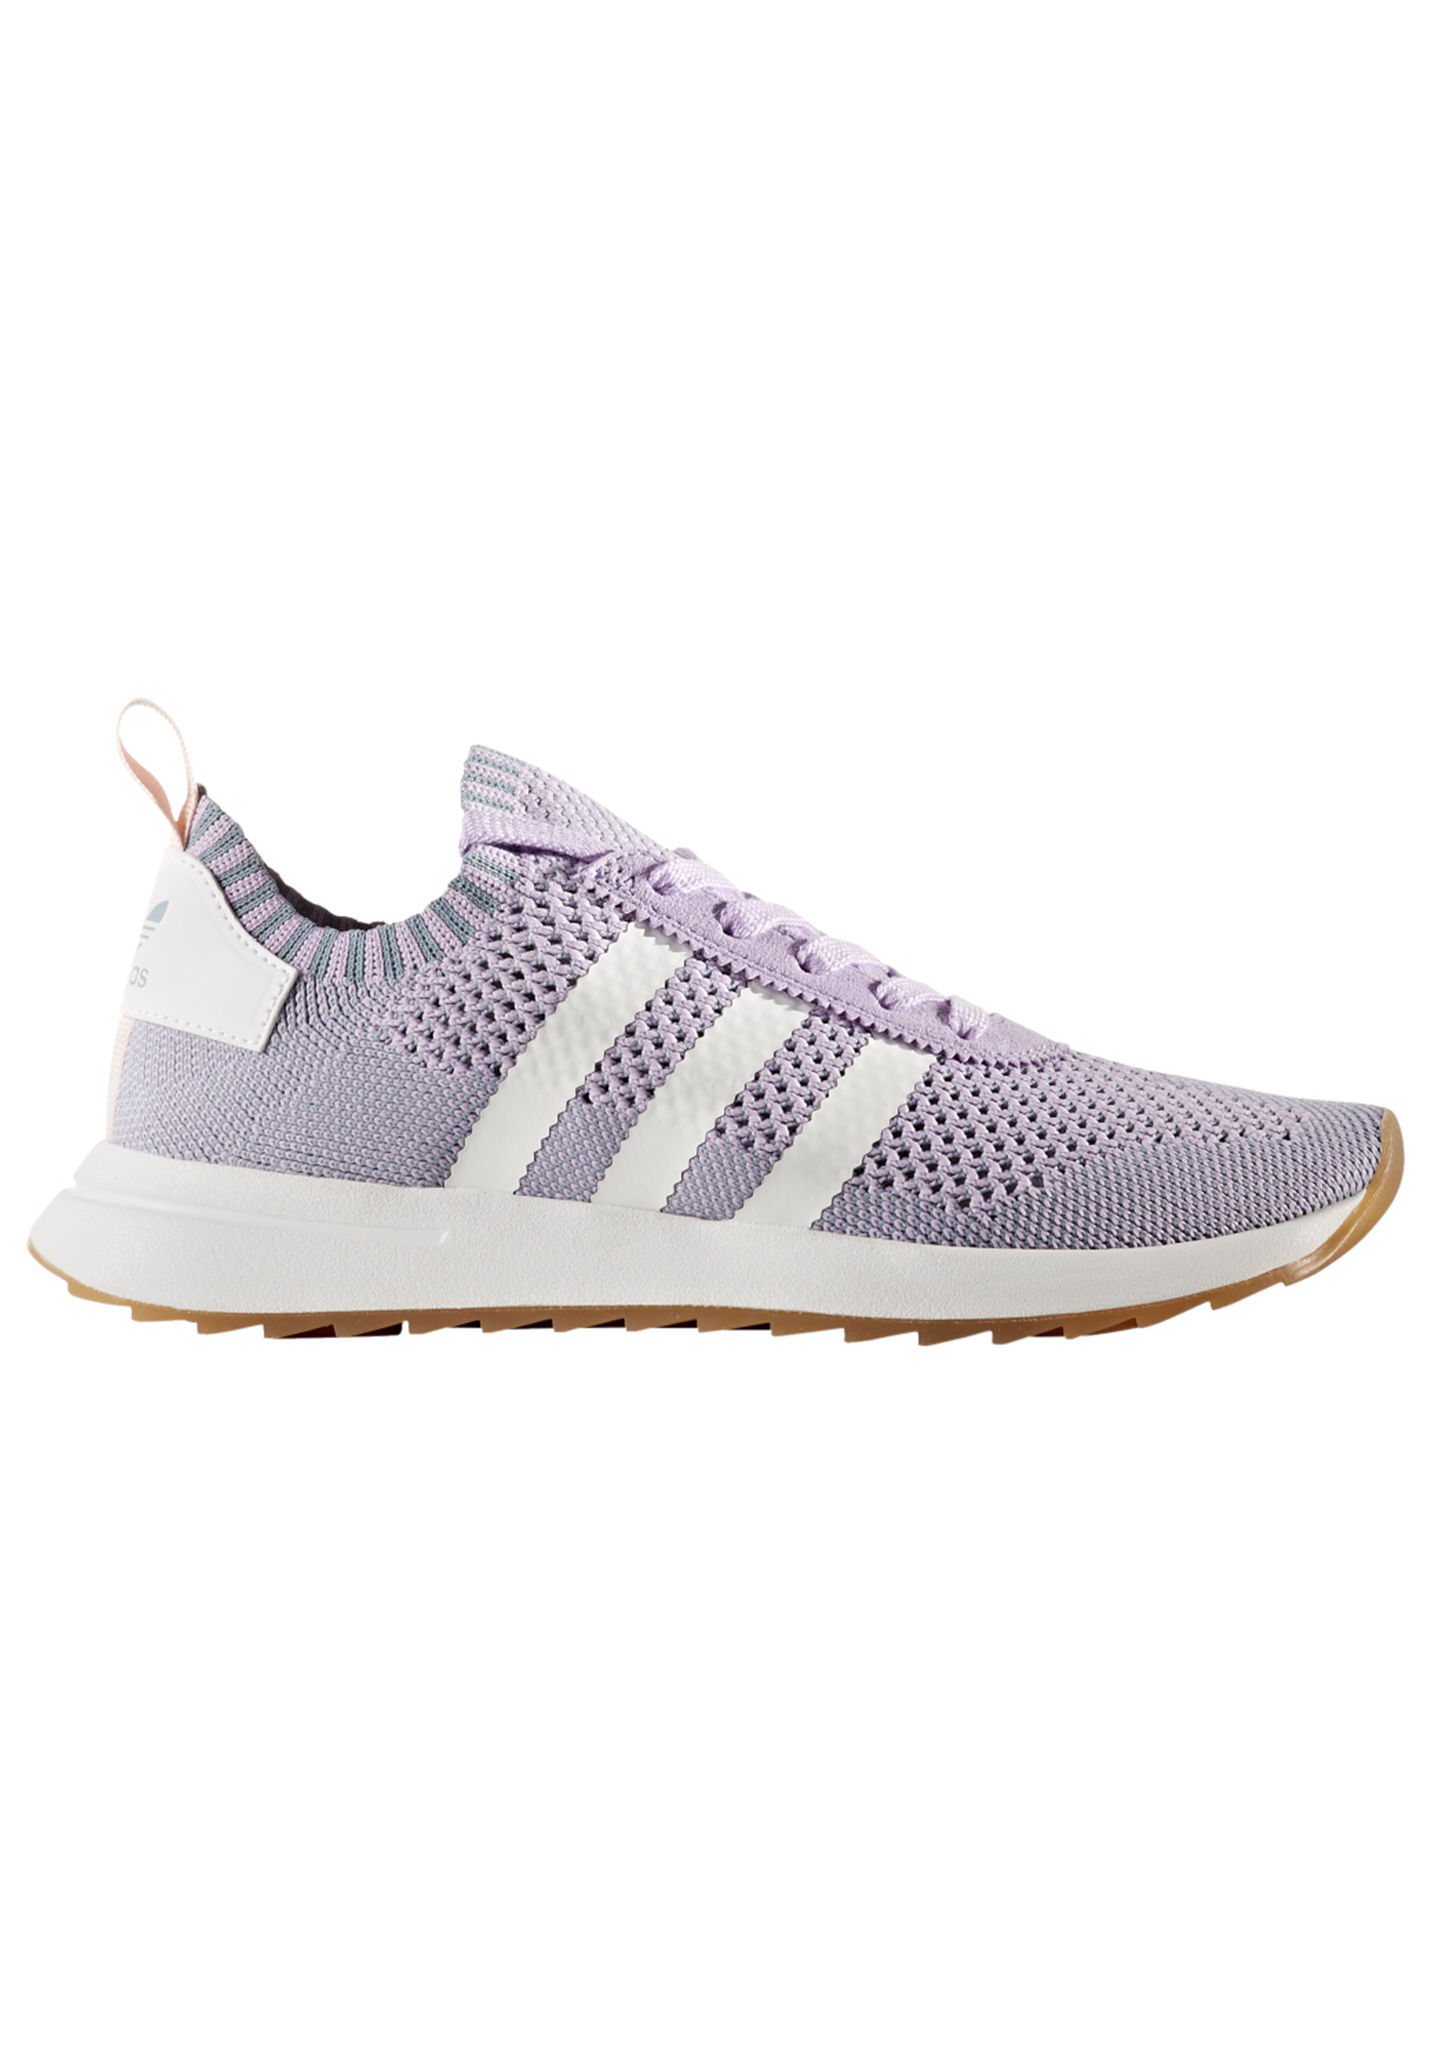 a02a5ded6e2 ADIDAS ORIGINALS Flashback Primeknit - Sneakers voor Dames - Paars - Planet  Sports